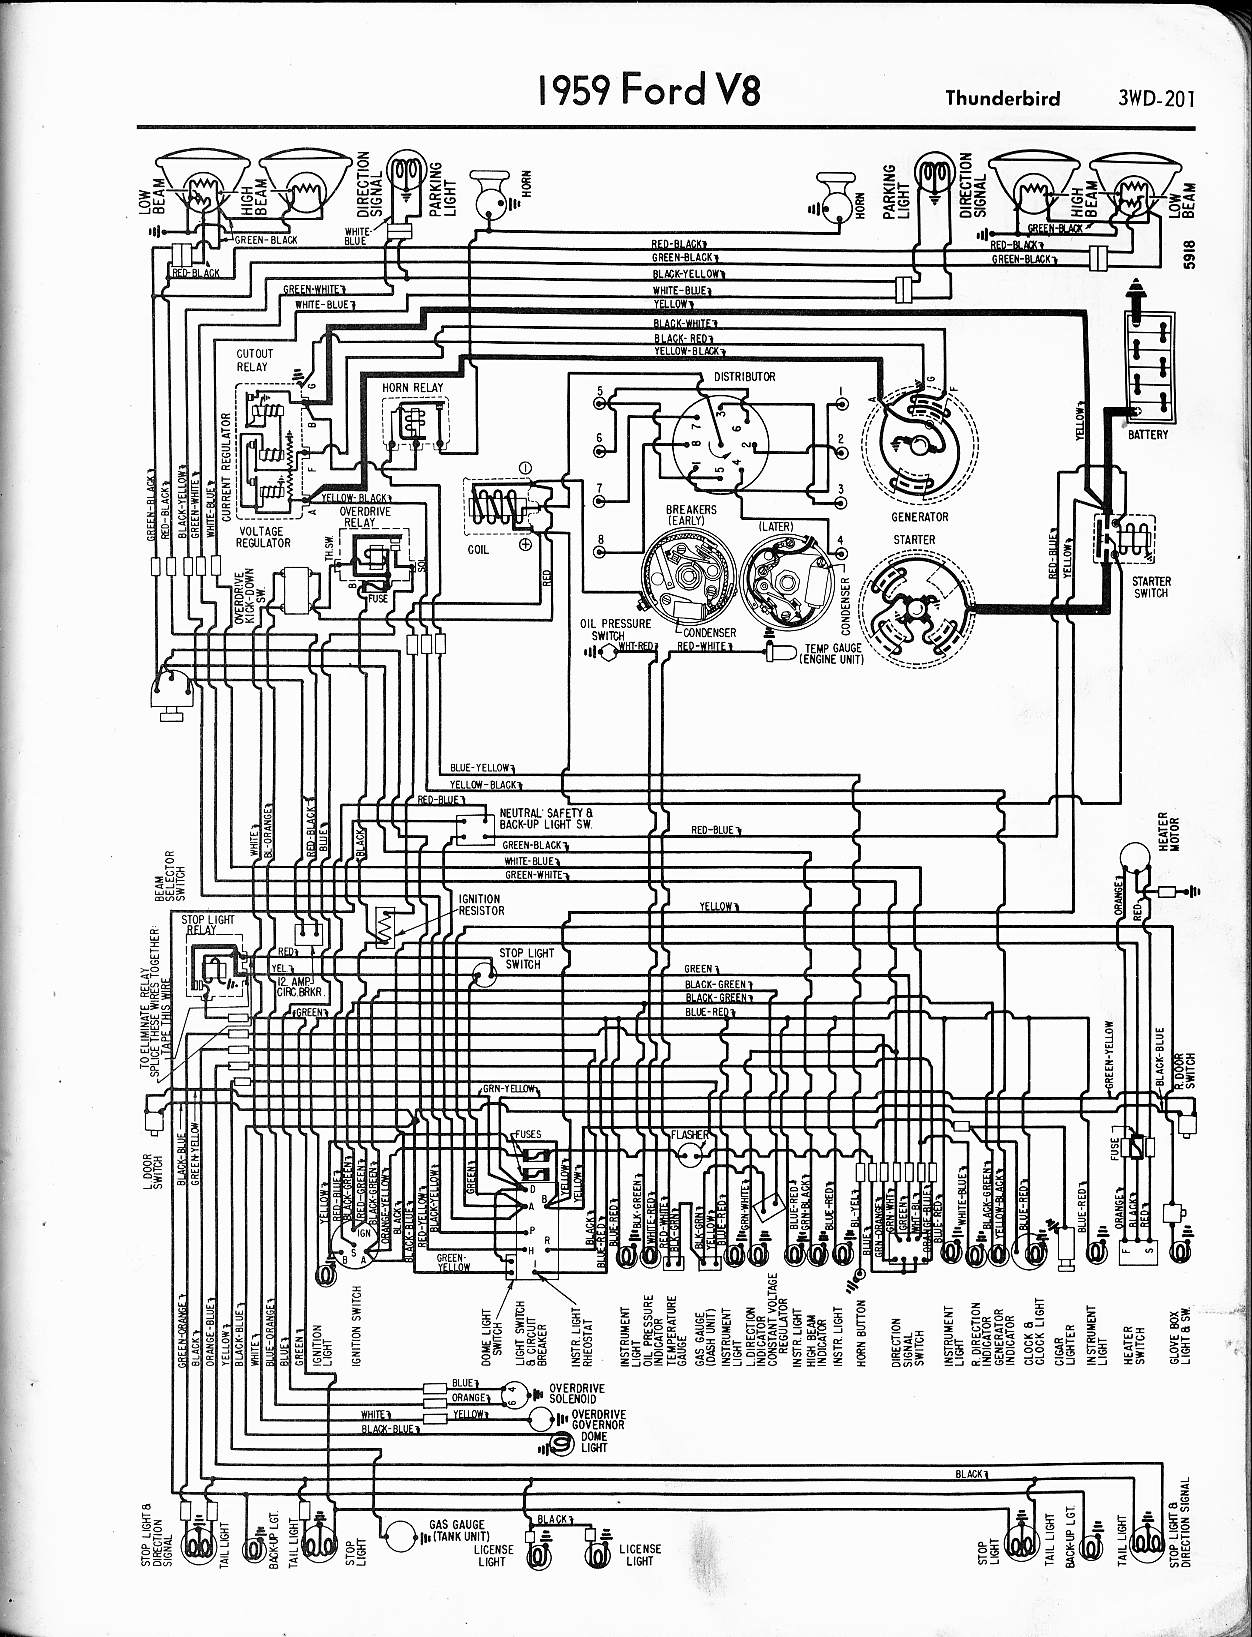 MWire5765 201 1958 ford car wiring diagram 1958 wirning diagrams 2000 Ford Headlight Switch Wiring Diagram at webbmarketing.co